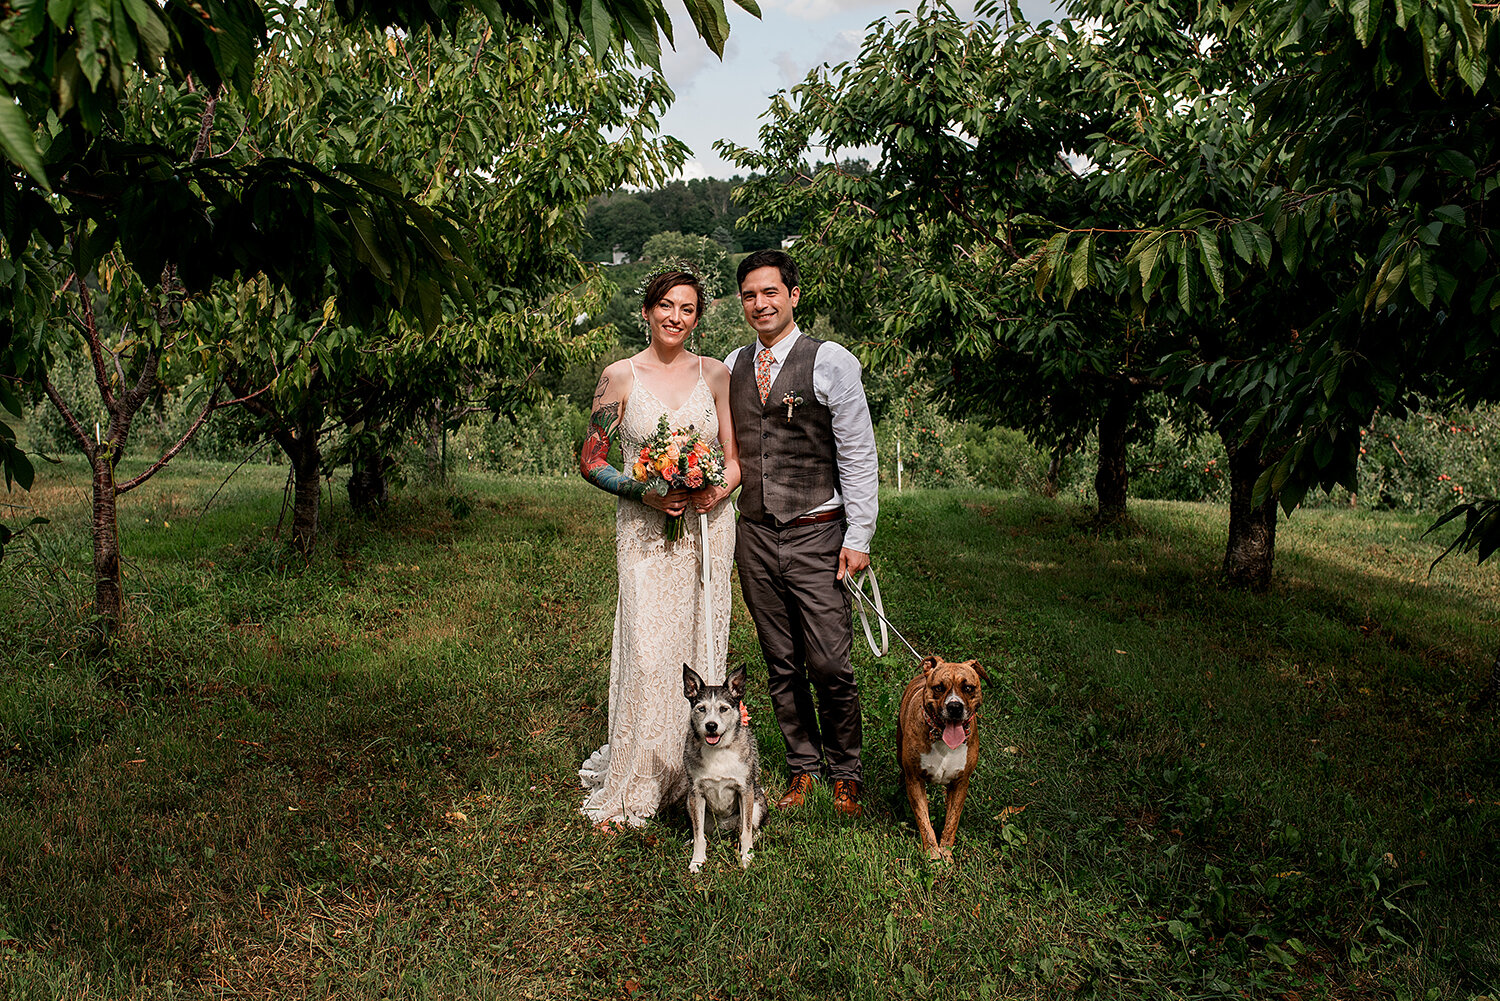 connecticut intimate wedding photography at peach orchard in litchfield county